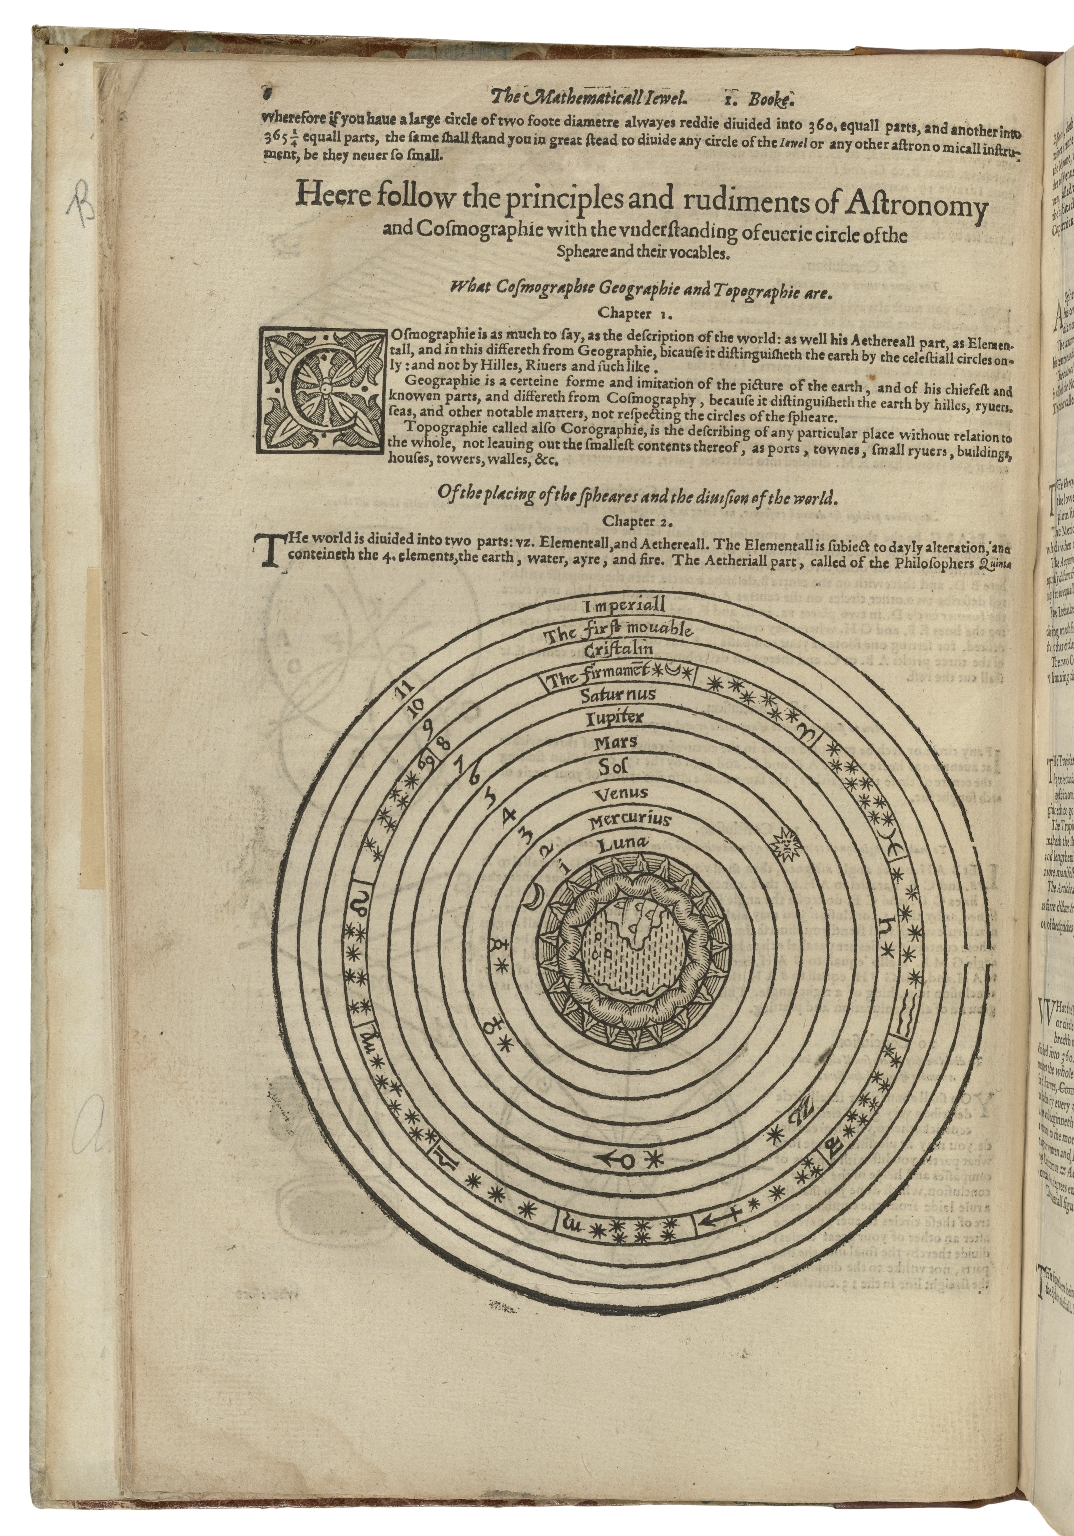 The mathematical ievvel : shewing the making, and most excellent vse of a singuler instrument so called: in that it performeth with wonderfull dexteritie, whatsoeuer is to be done, either by quadrant, ship, circle, cylinder, ring, dyall, horoscope, astrolabe, sphere, globe, or any such like heretofore deuised: ... The vse of which iewel, is so aboundant and ample, that it leadeth any man practising thereon, the direct pathway ... through the whole artes of astronomy, cosmography, ... and briefely of whatsoeuer concerneth the globe or sphere: ... The most part newly founde out by the author, compiled and published ... by Iohn Blagraue of Reading gentleman and well willer to the mathematickes, who hath cut all the prints or pictures of the whole worke with his owne hands. 1585.